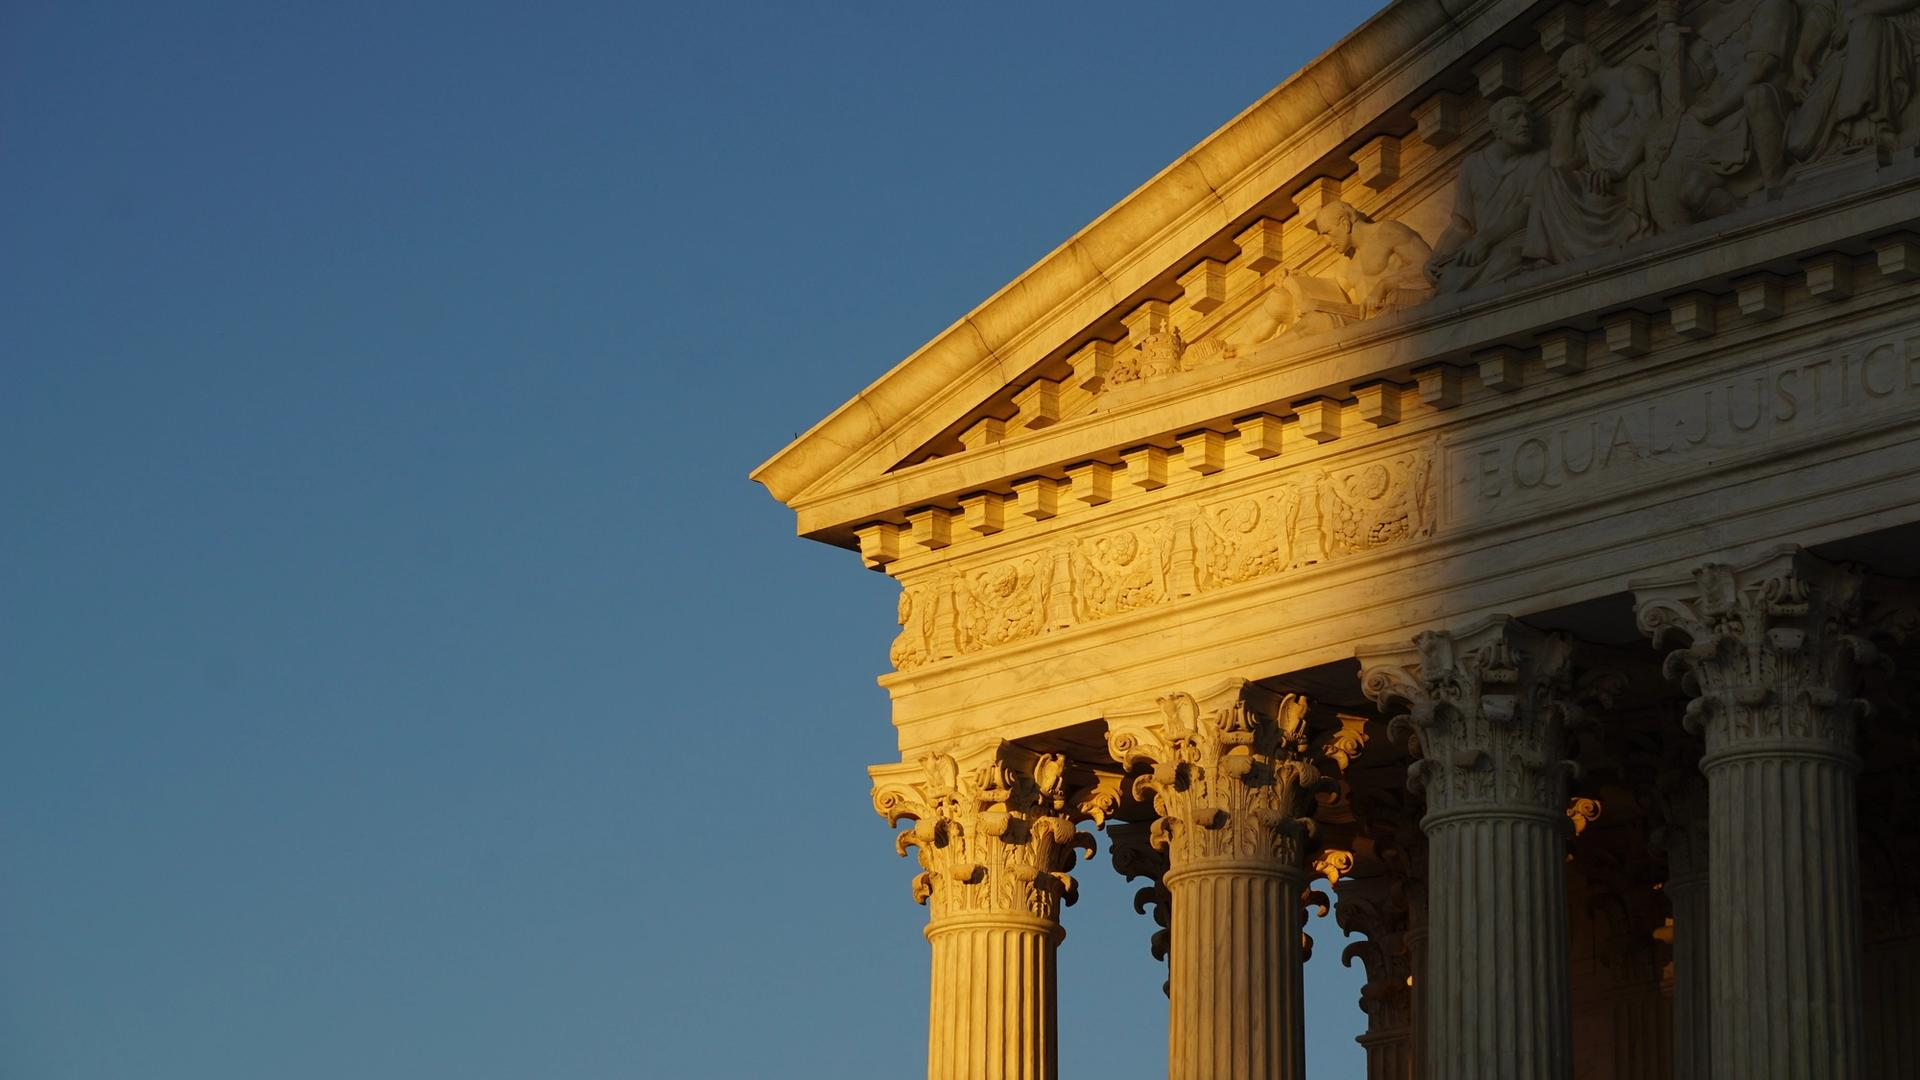 The front façade of the Supreme Court of the United States in Washington, DC Photo: Ian Hutchinson on Unsplash